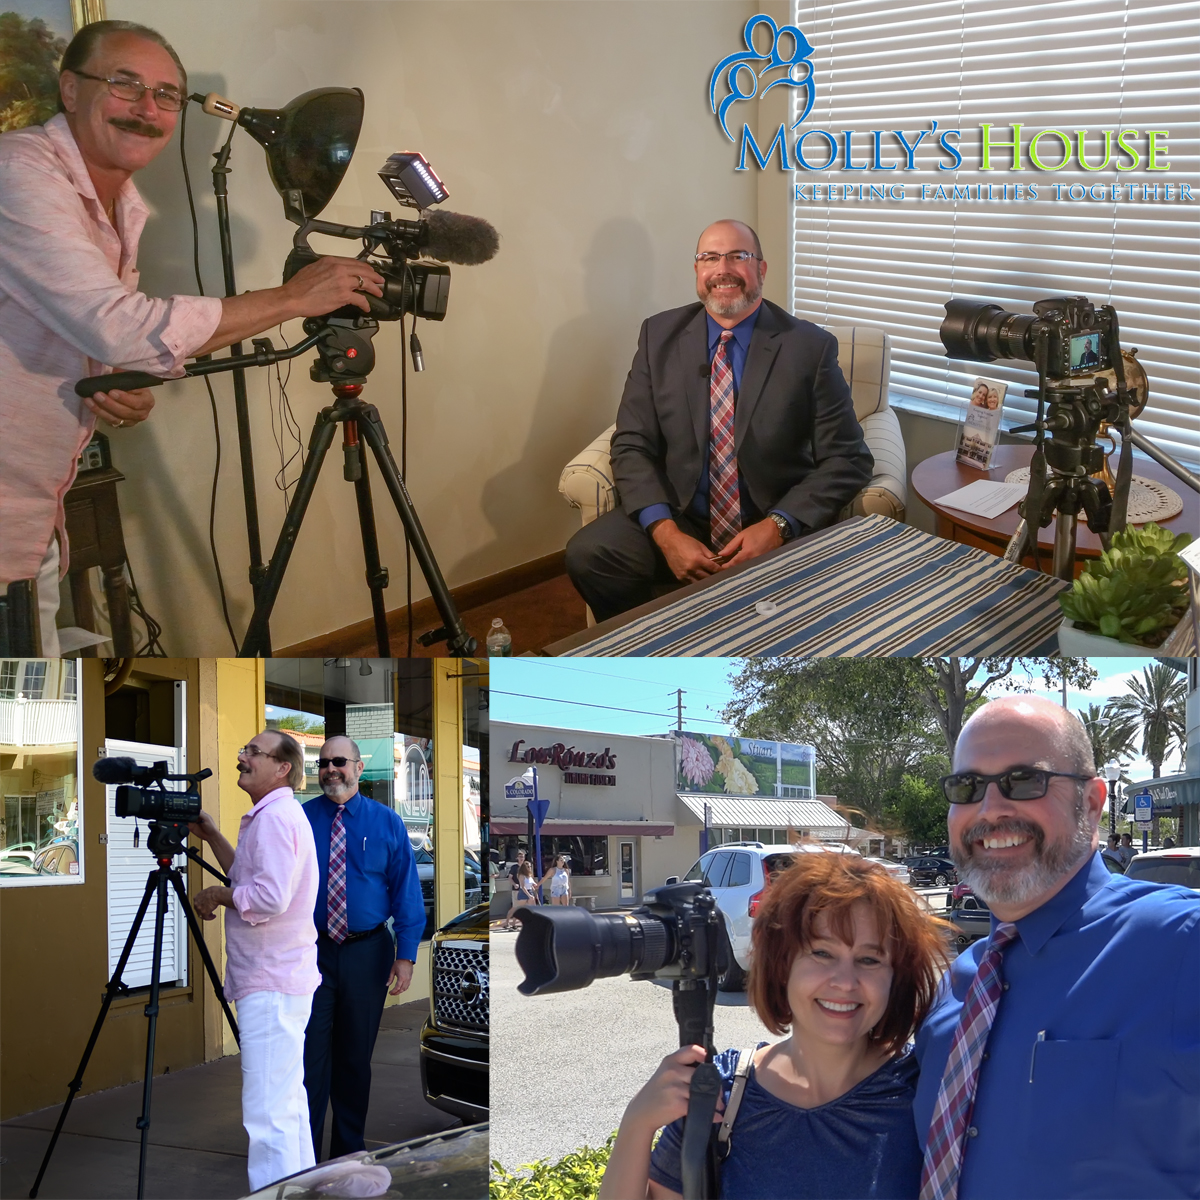 MCLM Media Pro Digital Marketing, Photography and Video Production on the Treasure Coast. Bill West